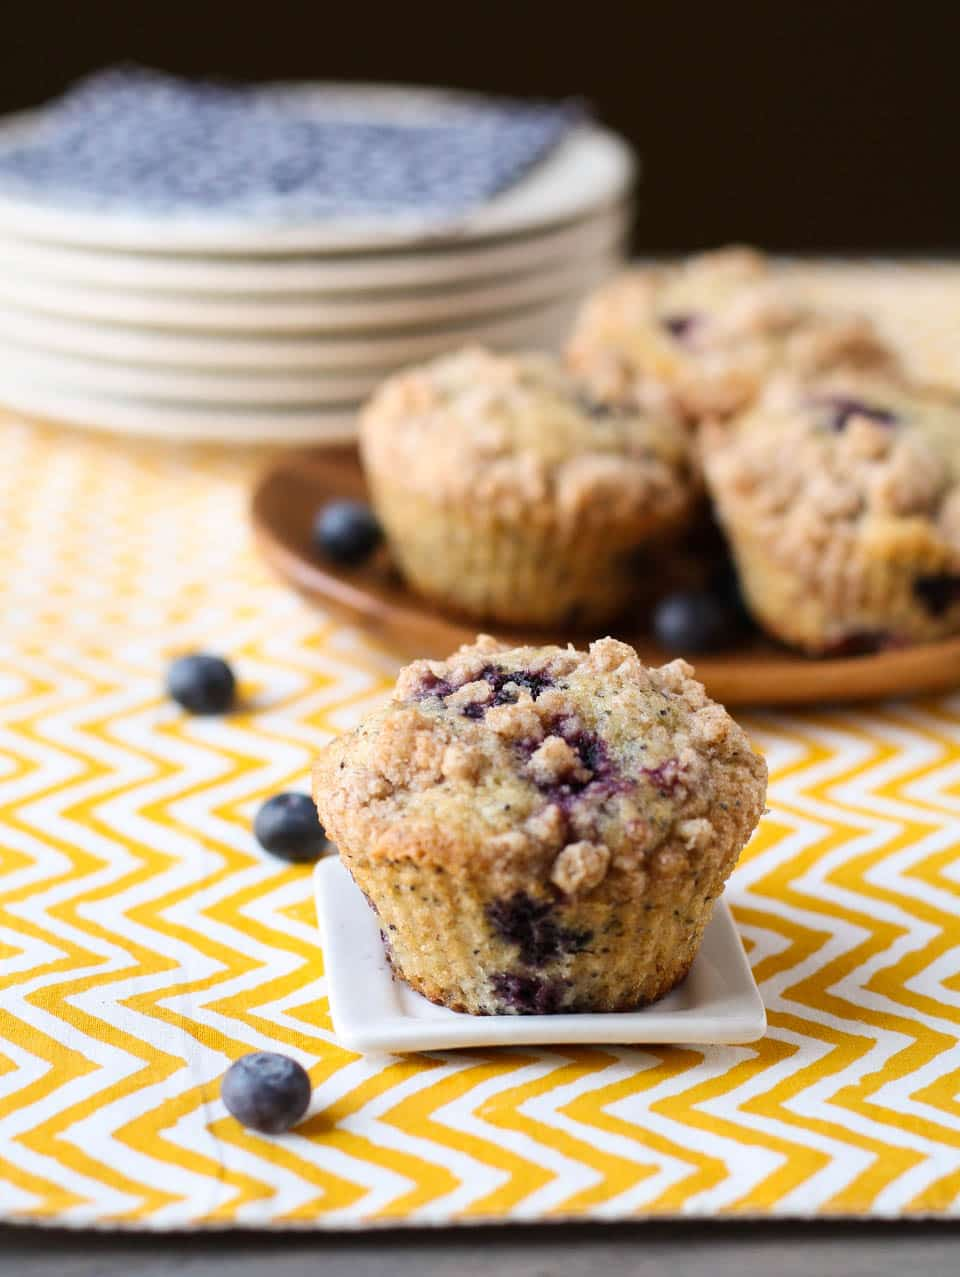 Blueberry Lemon Poppyseed Muffins - Garnish with Lemon